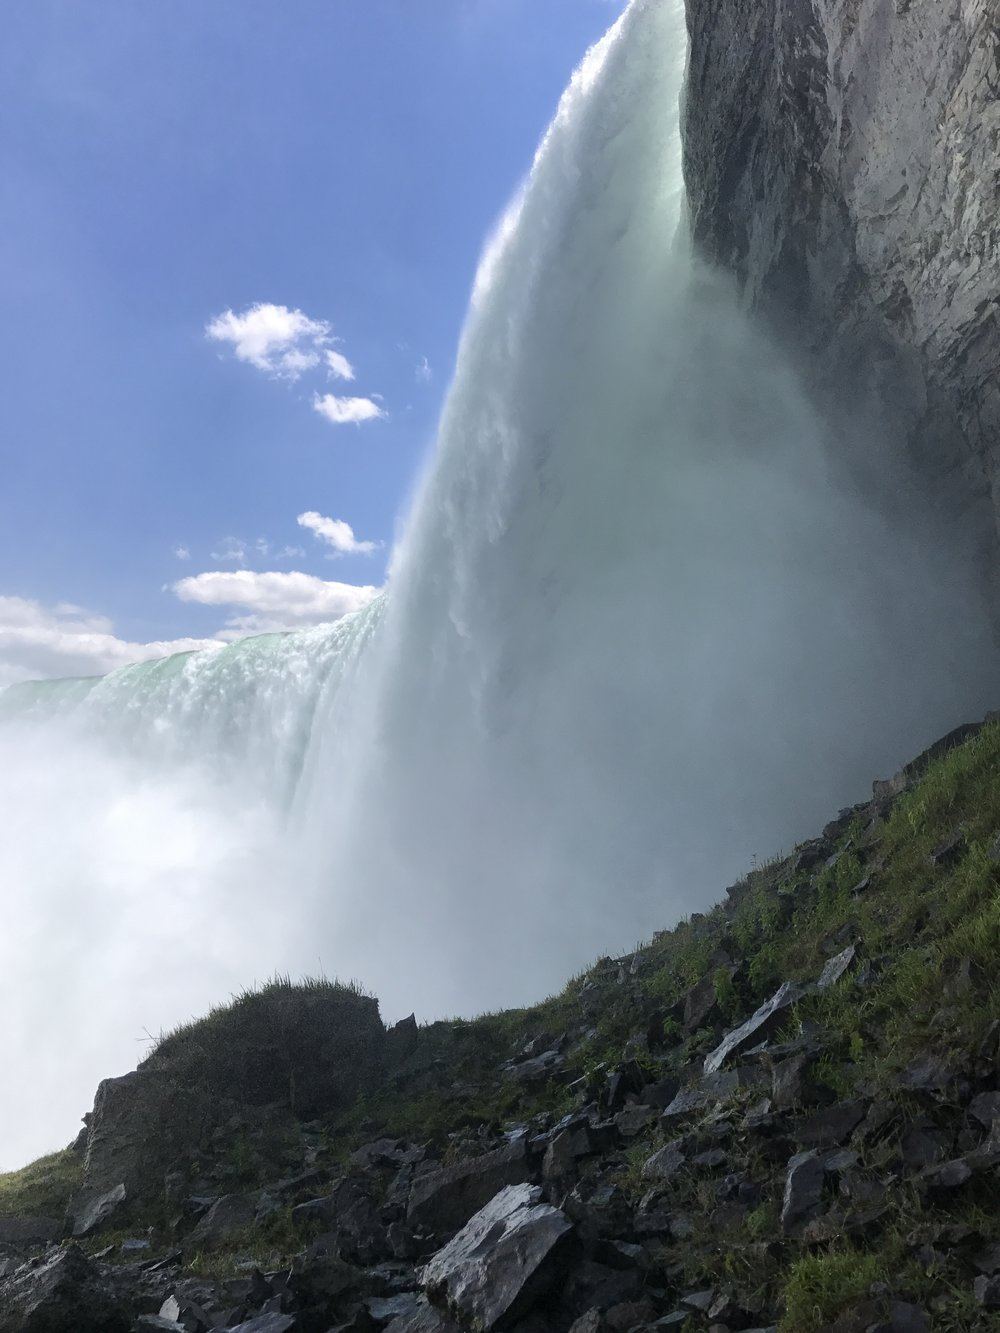 The most impressive views to be found in Journey Behind the Falls are of Horseshoe Falls.